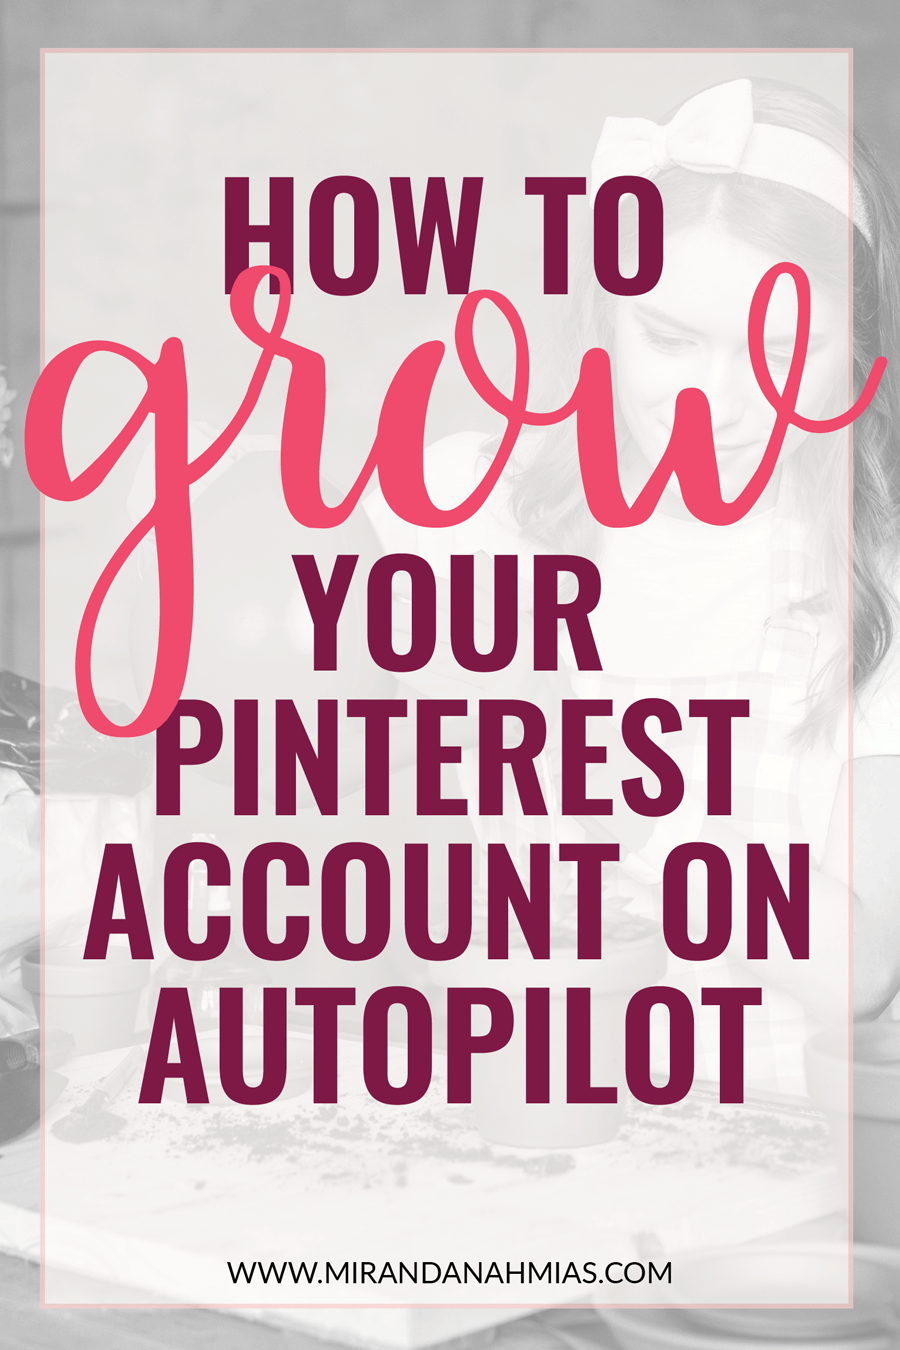 How to Grow Your Business with Pinterest on Autopilot! Use these expert tips and tricks to revamp your account and create massive growth and traffic from Pinterest // Miranda Nahmias & Co. Blog